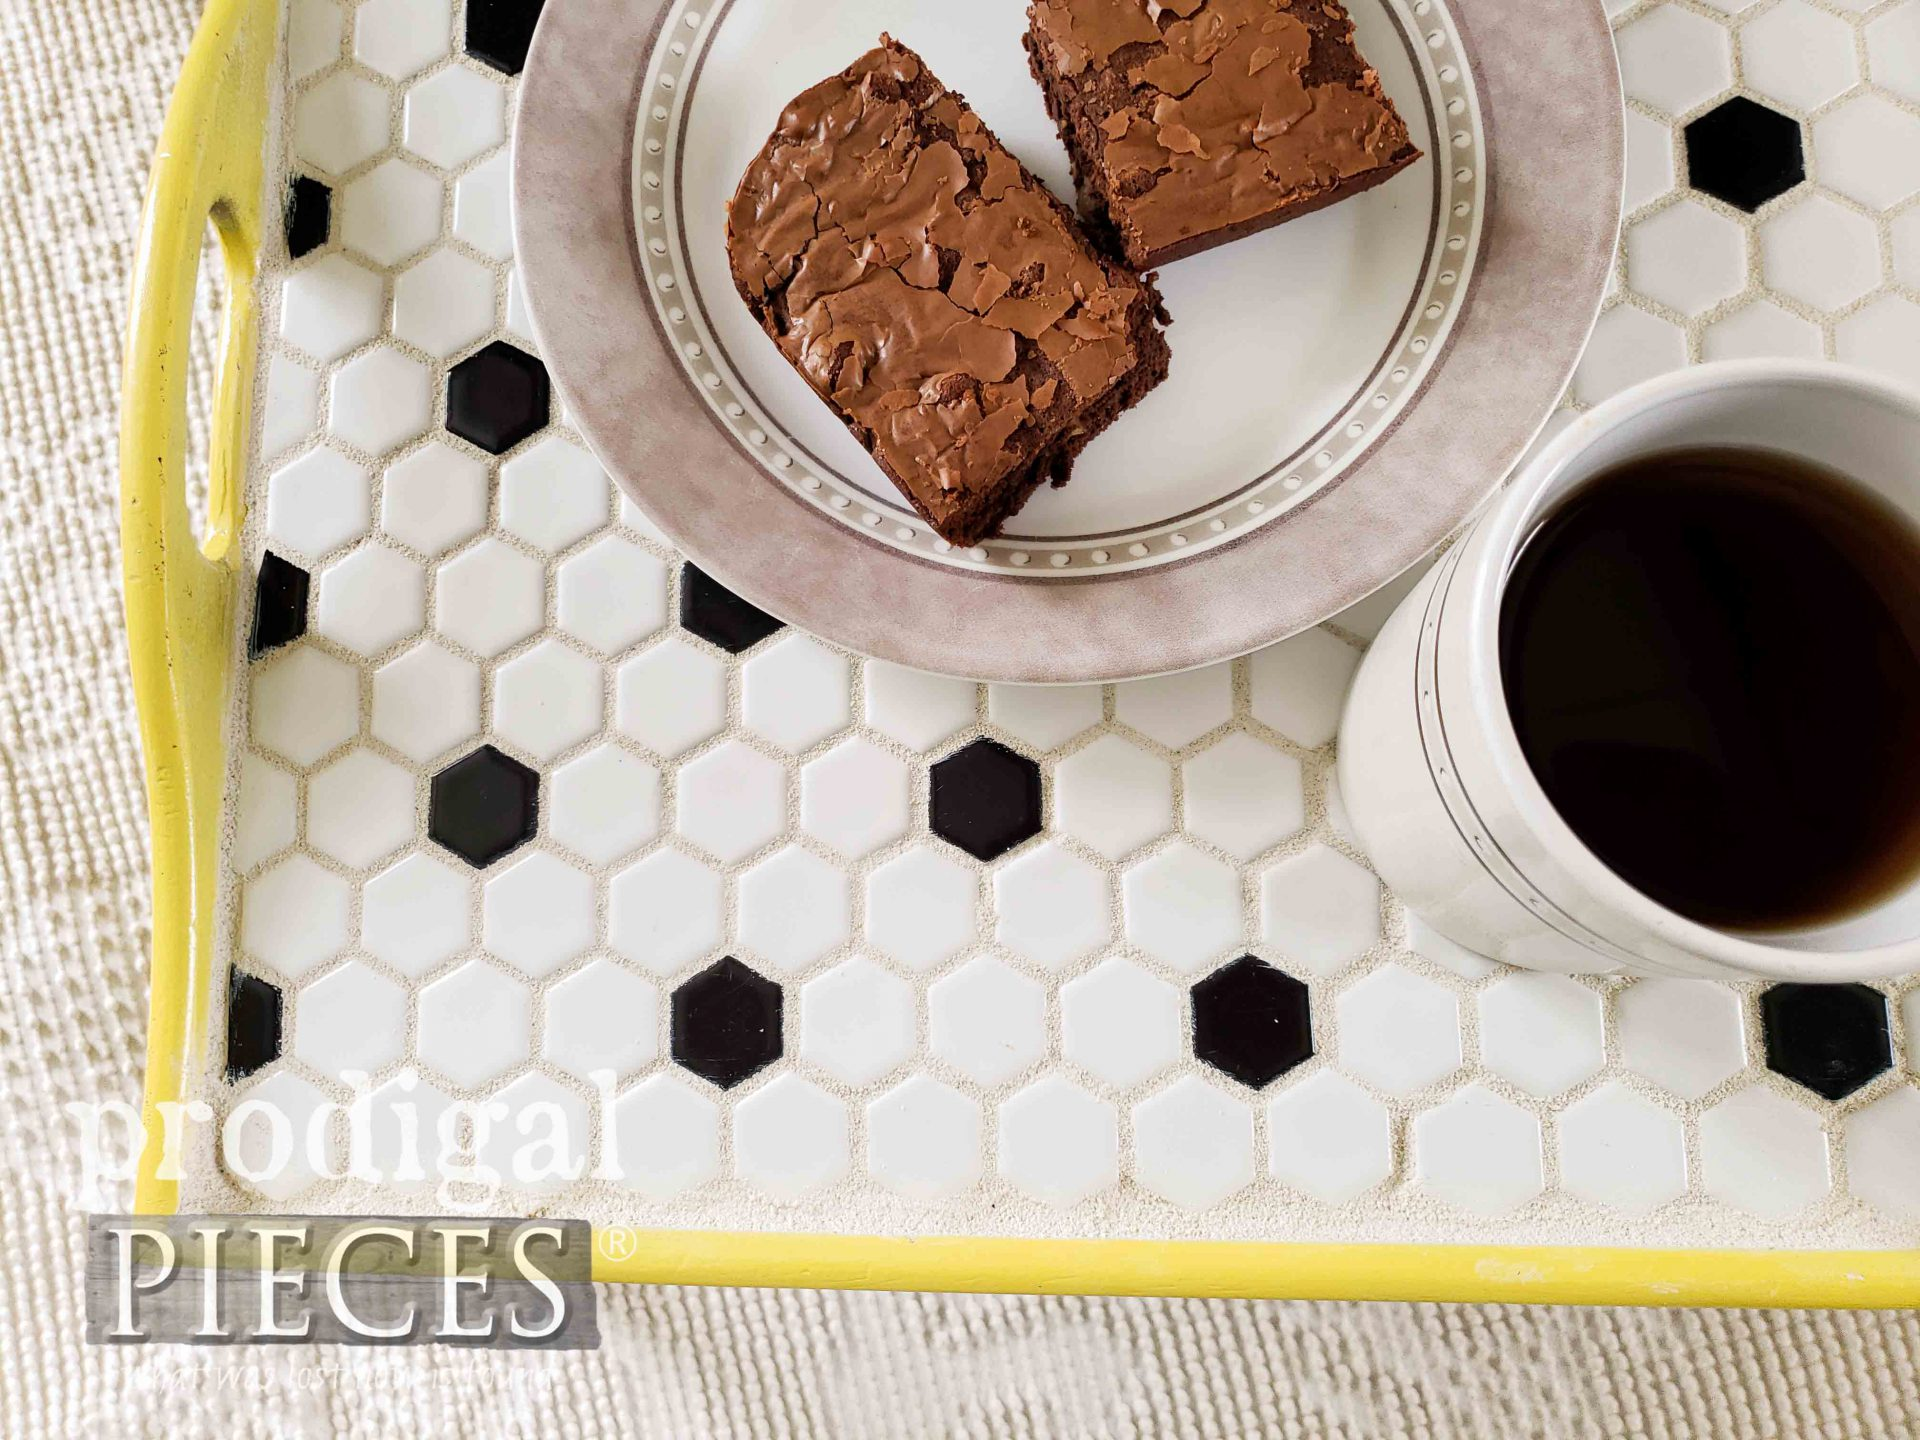 Modern Tiled Serving Tray by Larissa of Prodigal Pieces | prodigalpieces.com #prodigalpieces #modern #farmhouse #entertaining #home